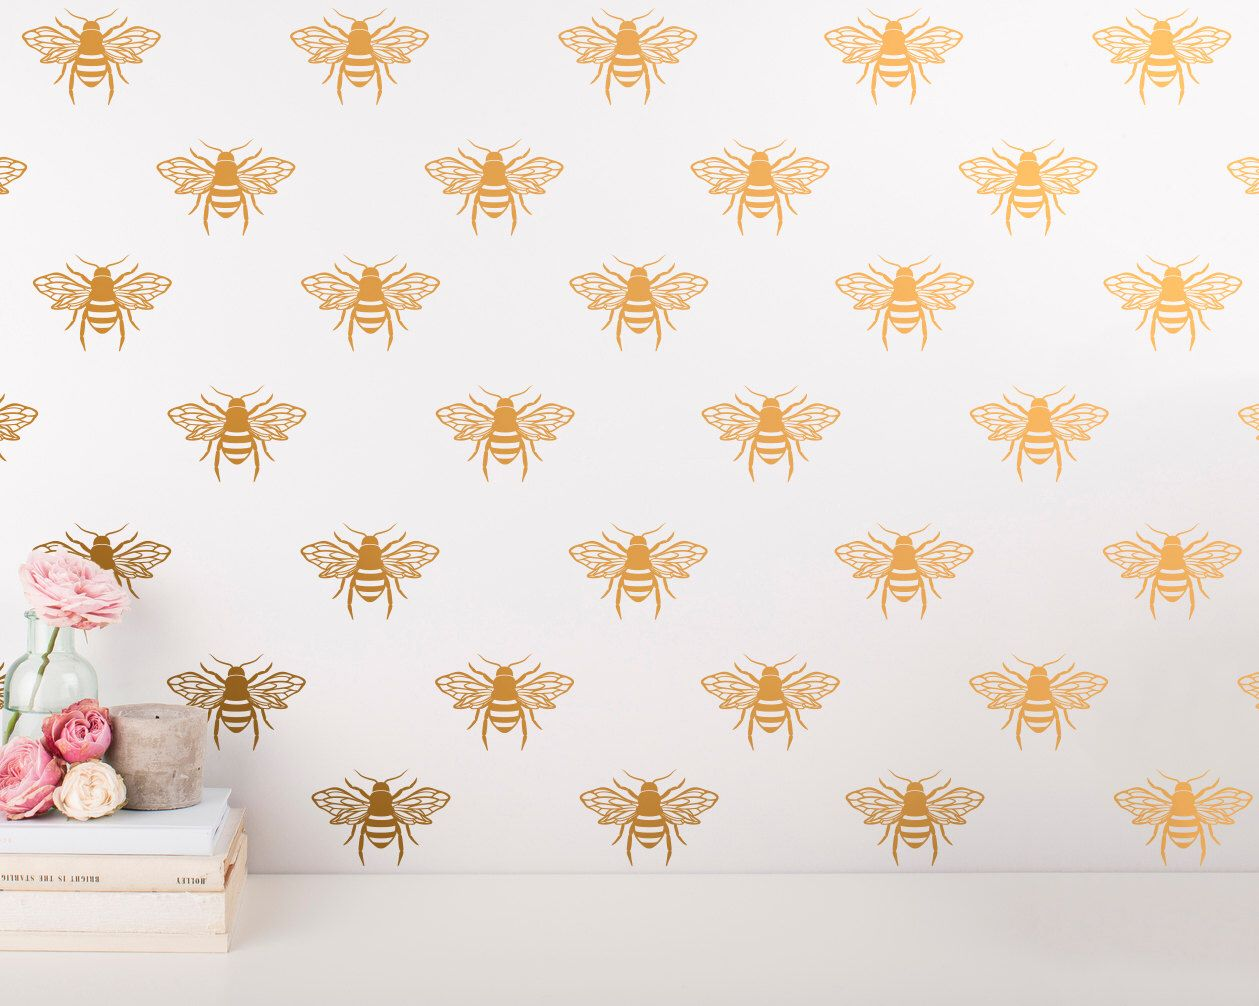 Bee wall decals unique vinyl wall decals gold decals bedroom bee wall decals unique vinyl wall decals gold decals bedroom decals living room decals wall decor wall stickers for gifts more amipublicfo Image collections